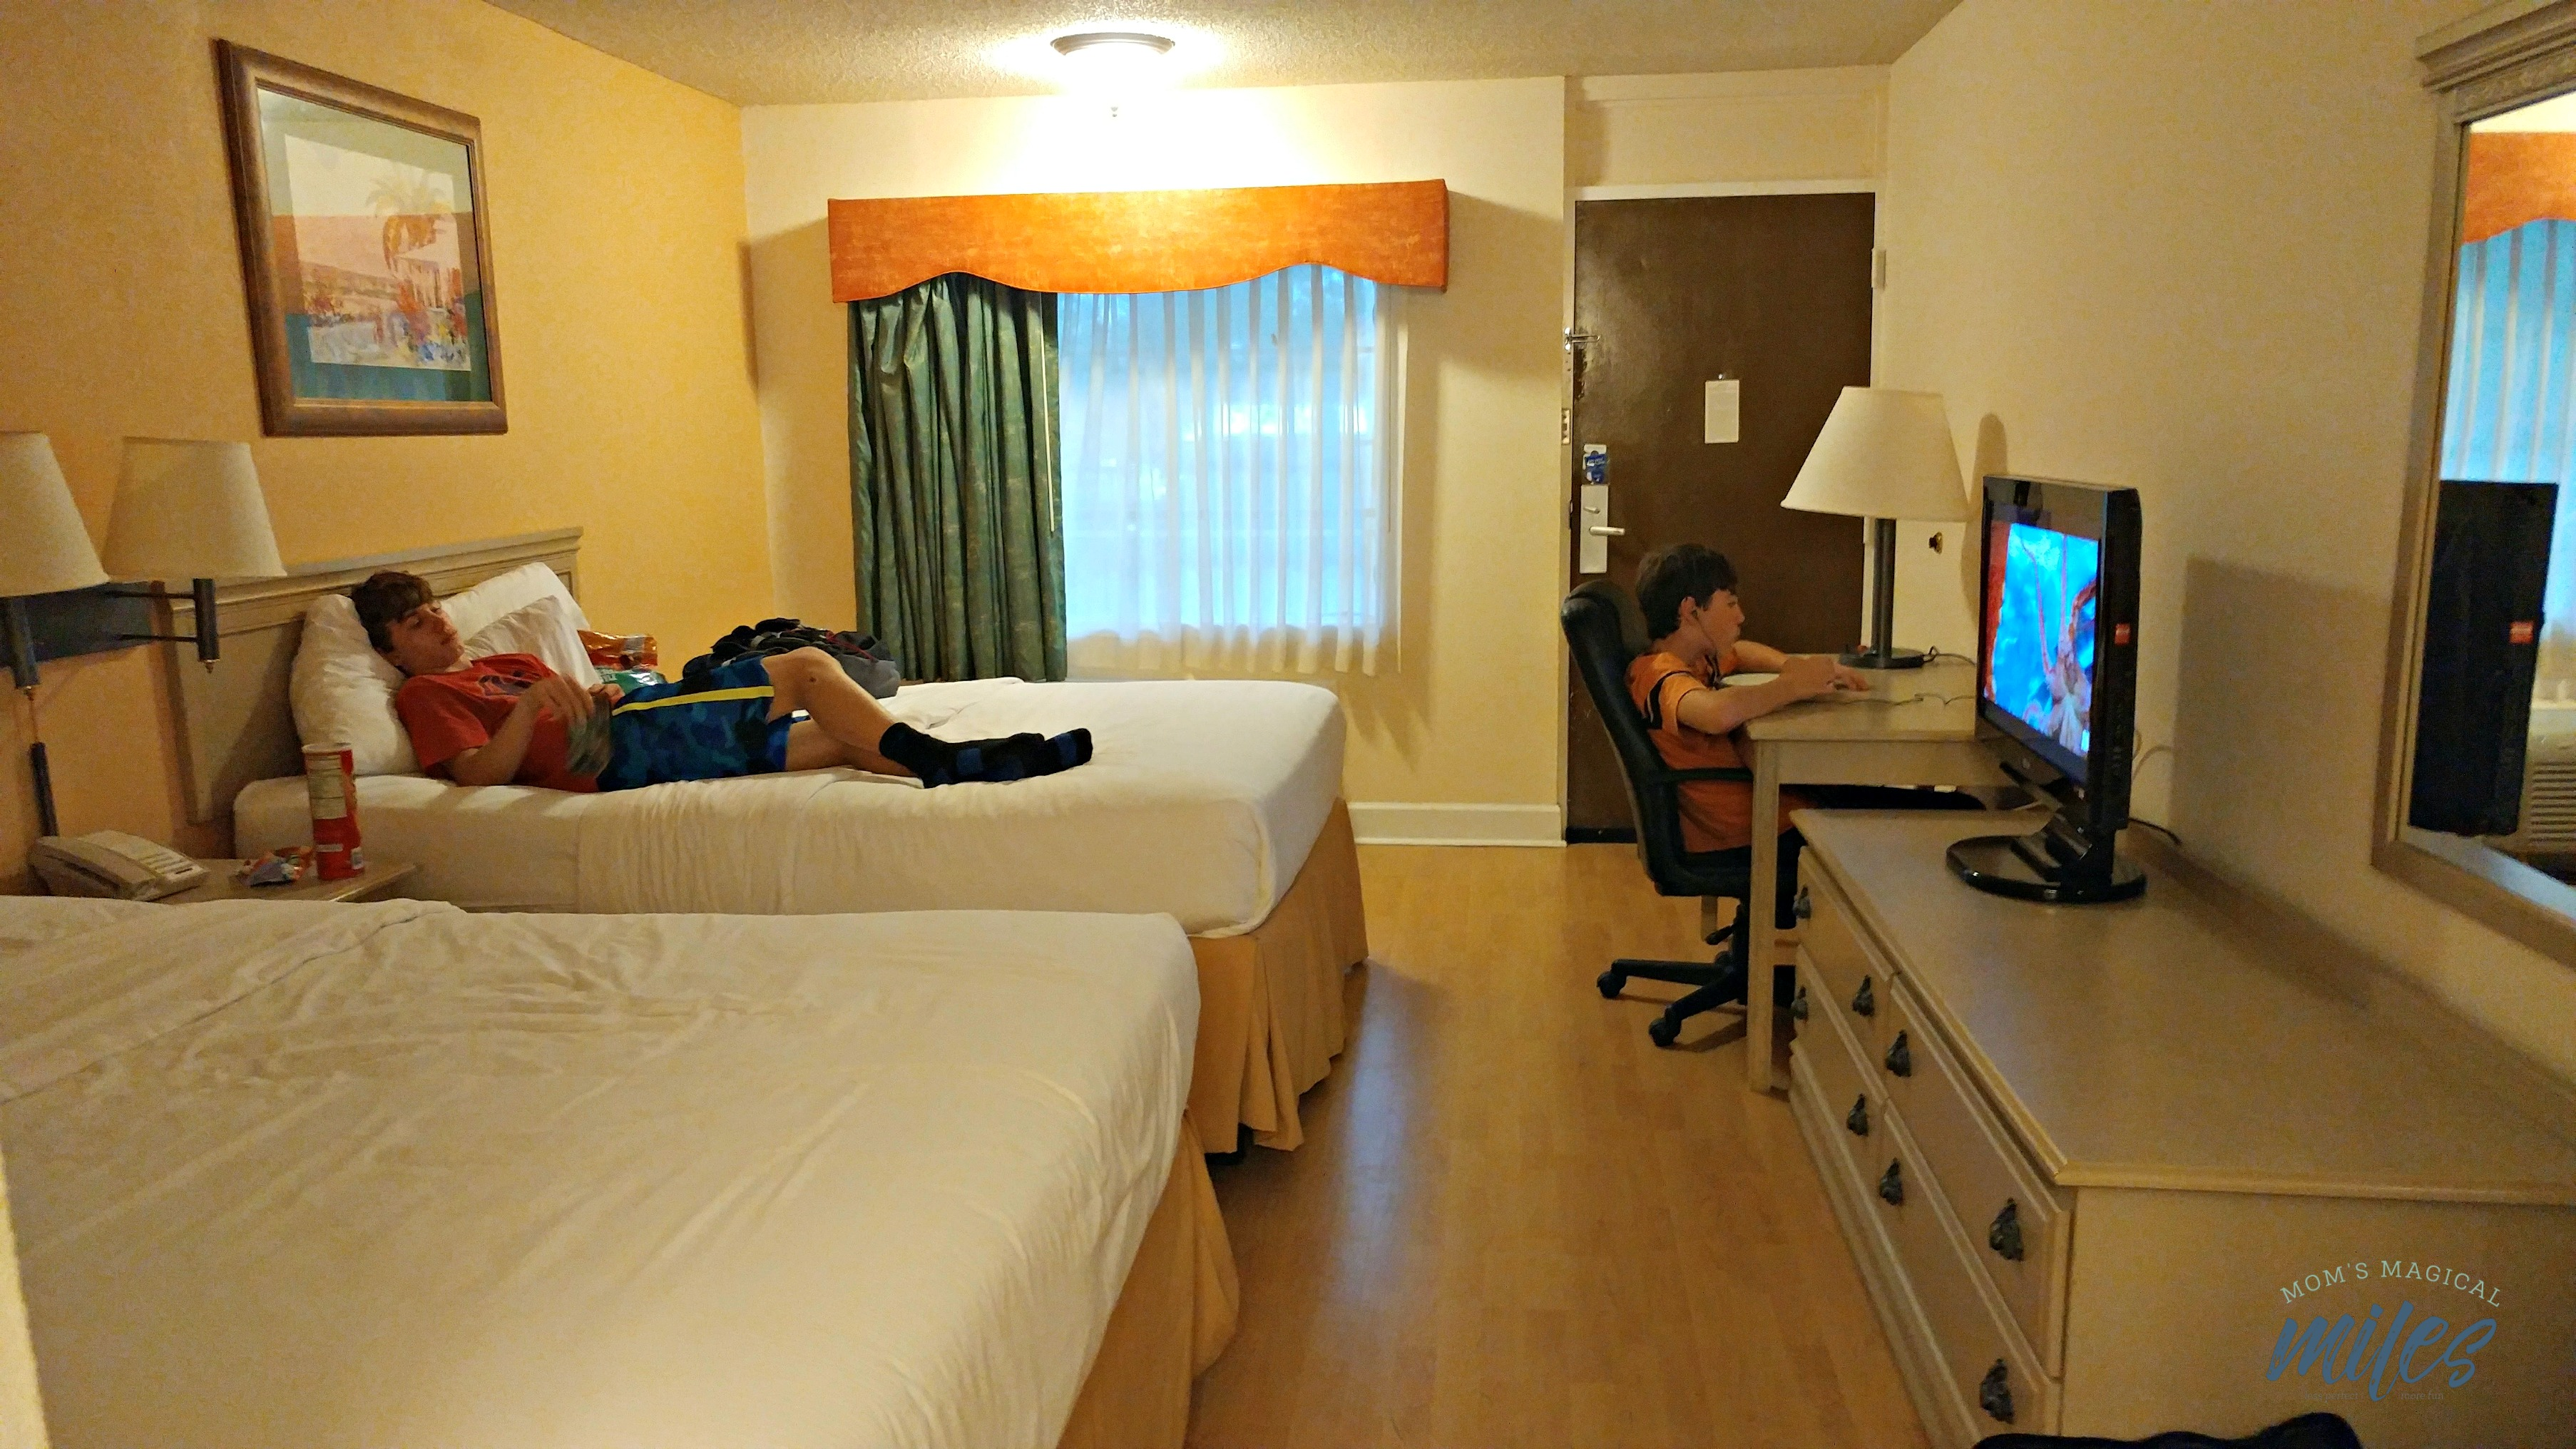 The bedroom area at The Cumberland inn offered enough space for a family.